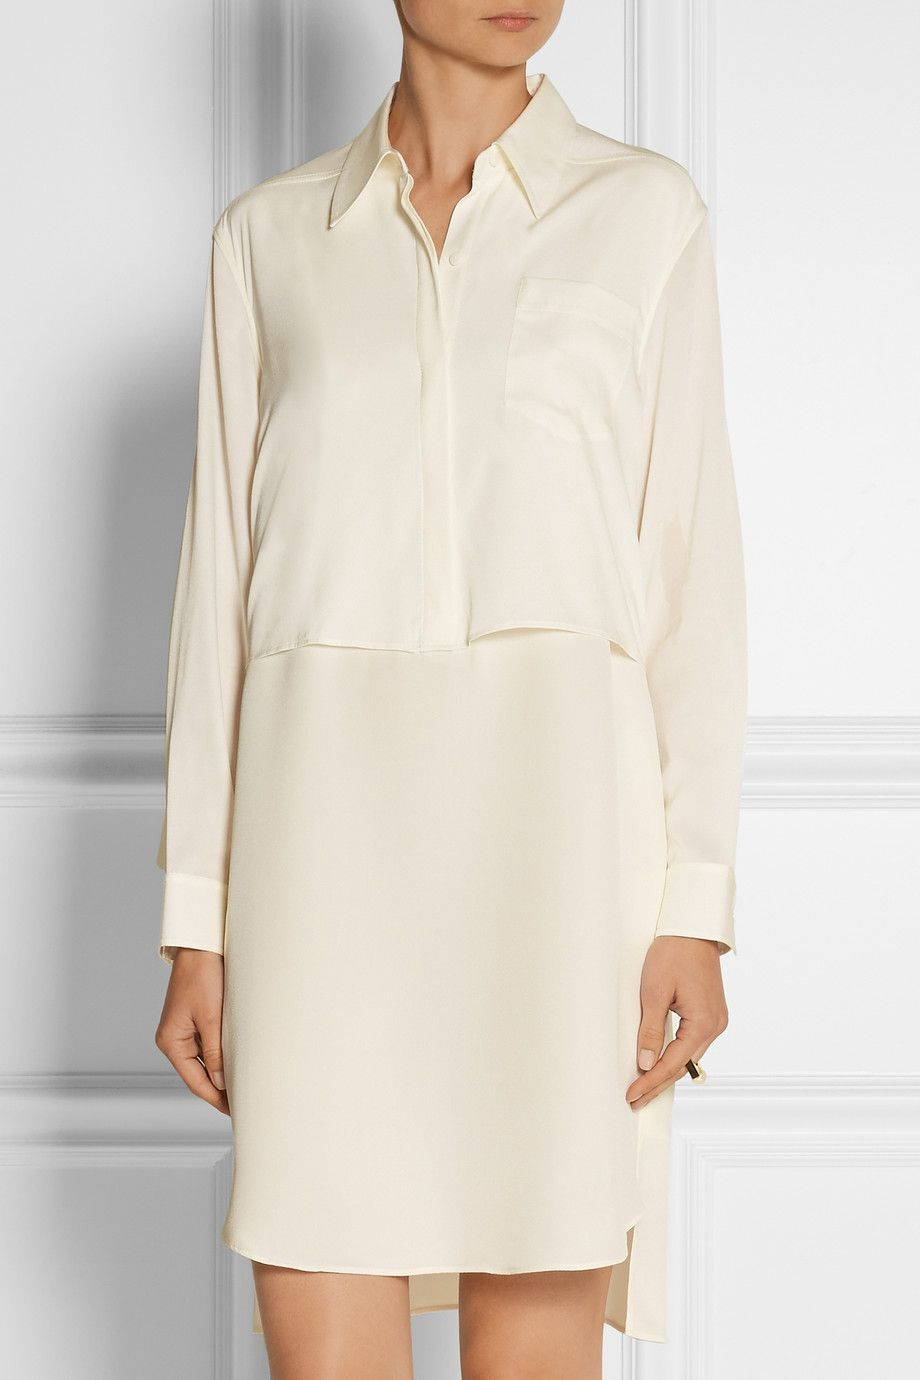 Cost Cheap Price Visit 3.1 Phillip Lim Woman Cotton And Silk-blend Mini Dress White Size M 3.1 Phillip Lim 100% Original Cheap Online Discount Great Deals Online Cheap Authentic DF3NE6cGZ